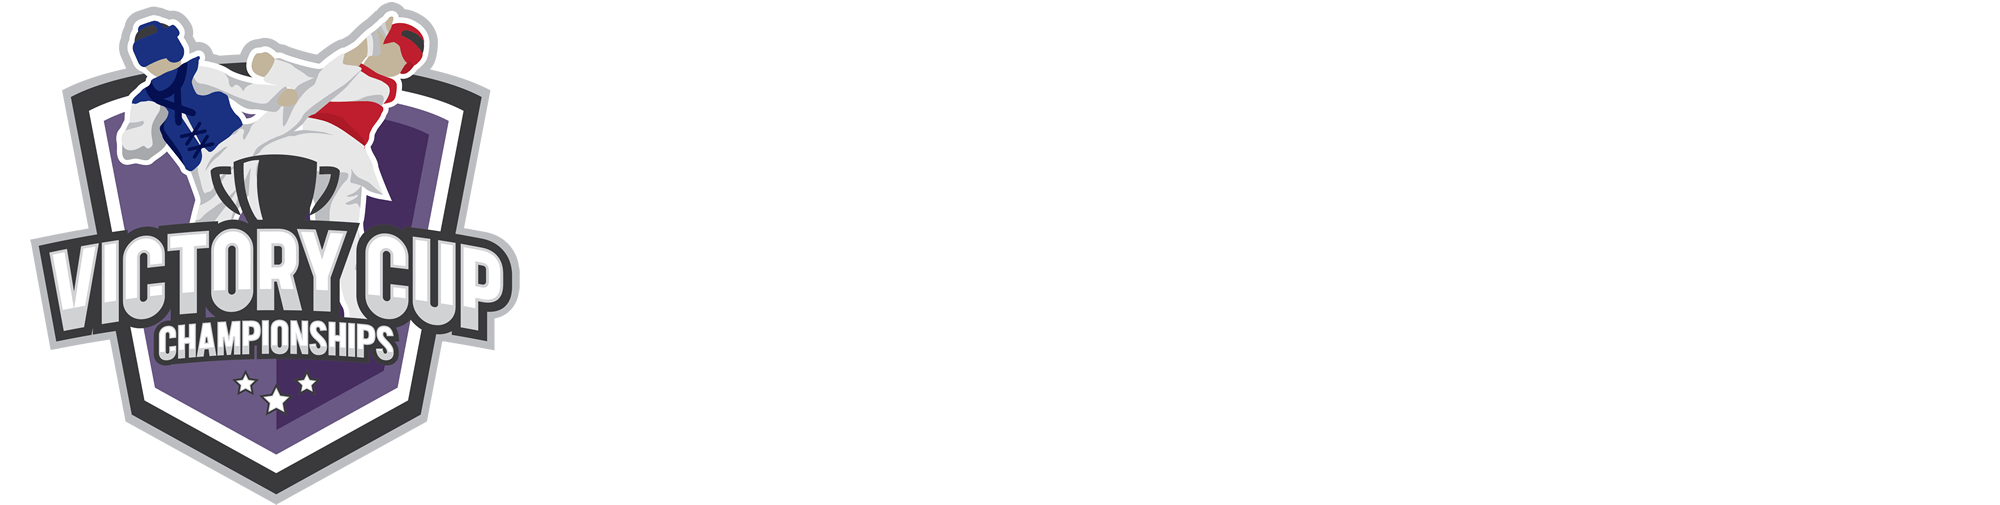 Victory Cup Championships